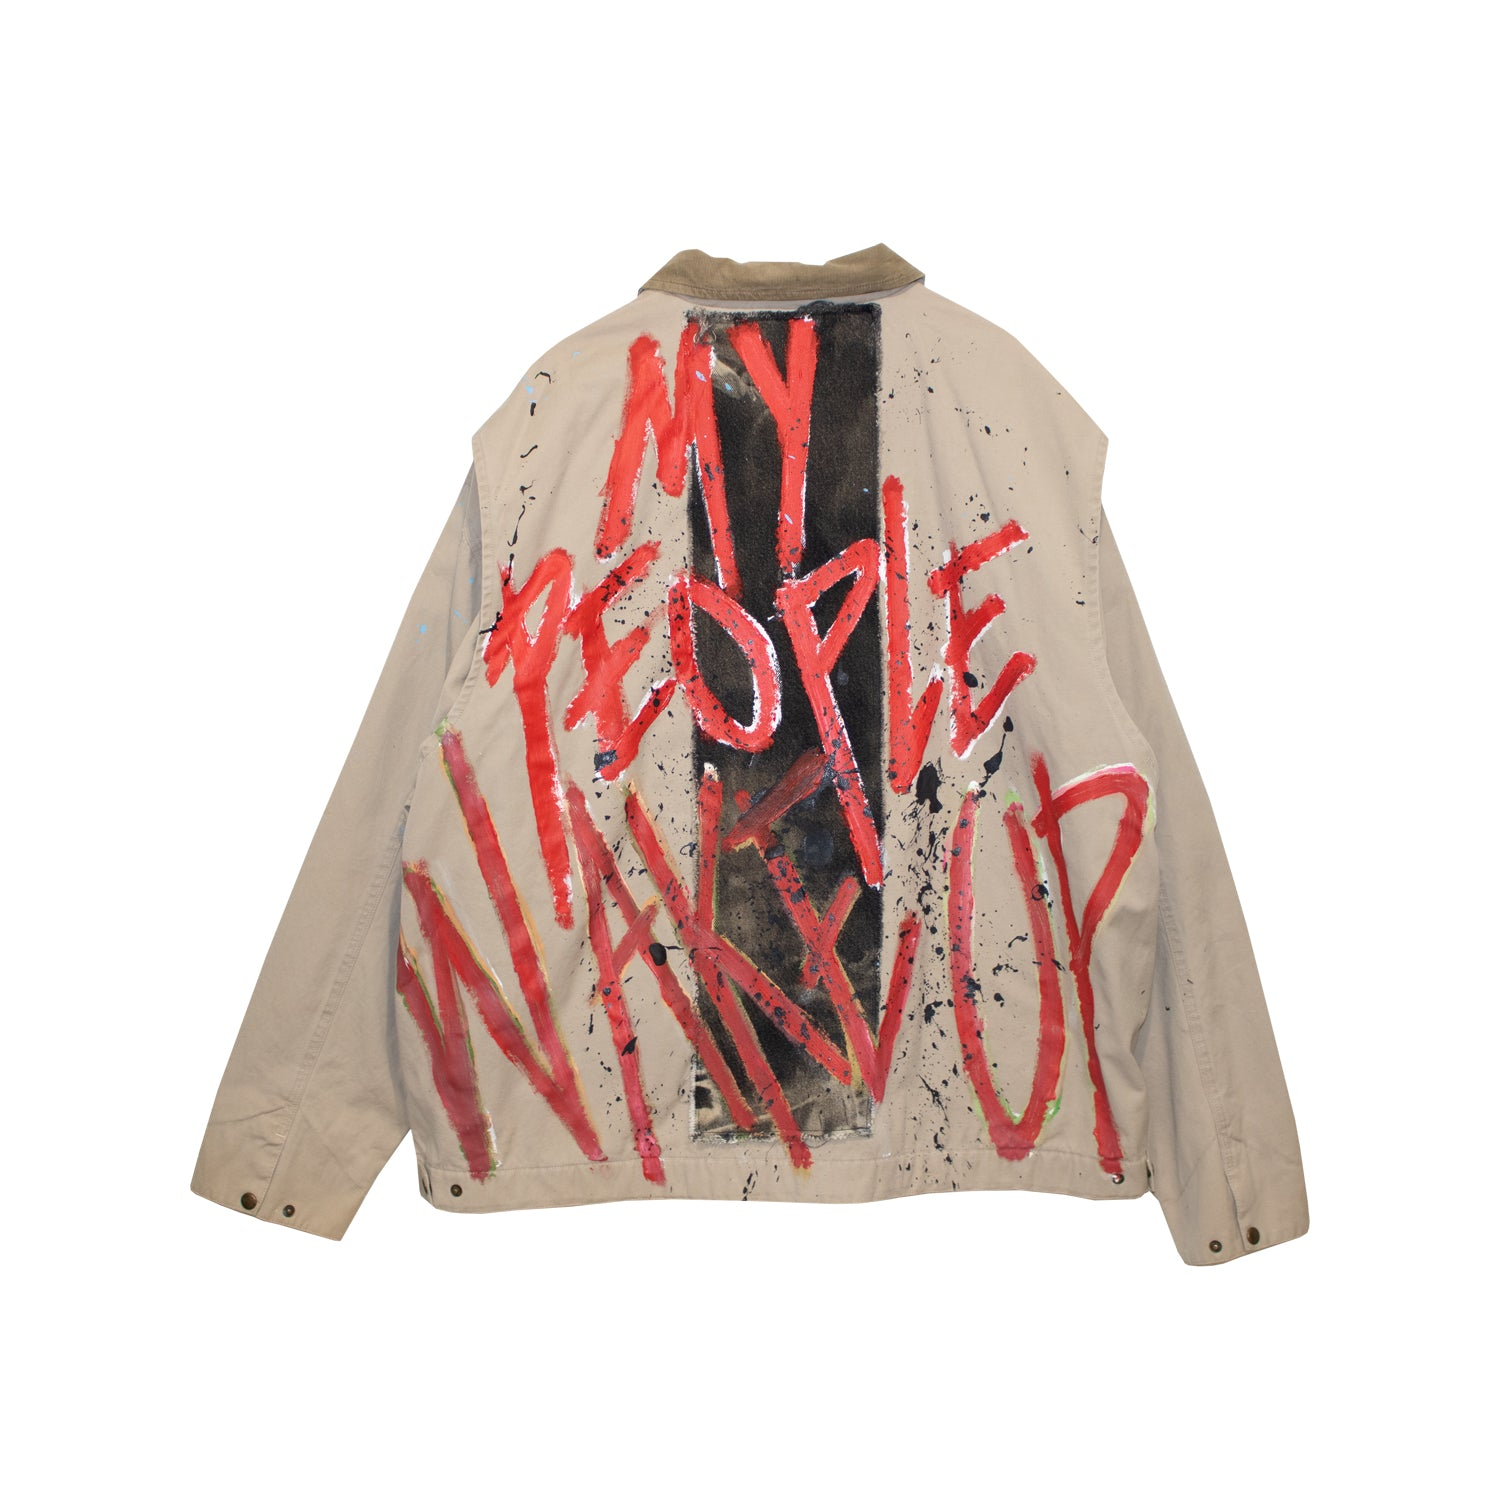 WAKE UP JACKET